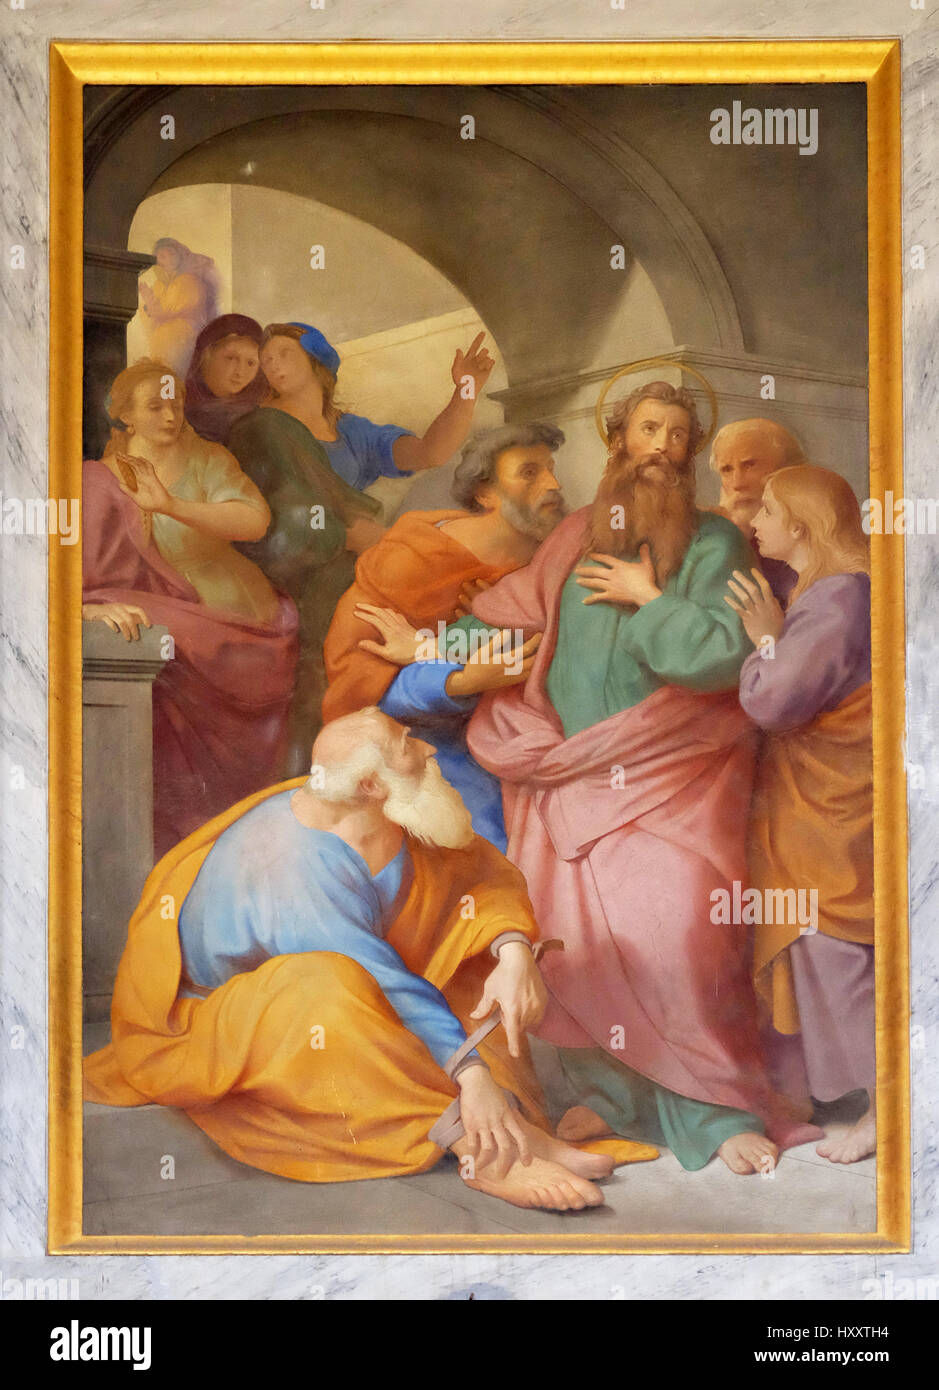 The fresco with the image of the life of St. Paul: Paul is Warned about the Jerusalem Mob, basilica of Saint Paul - Stock Image